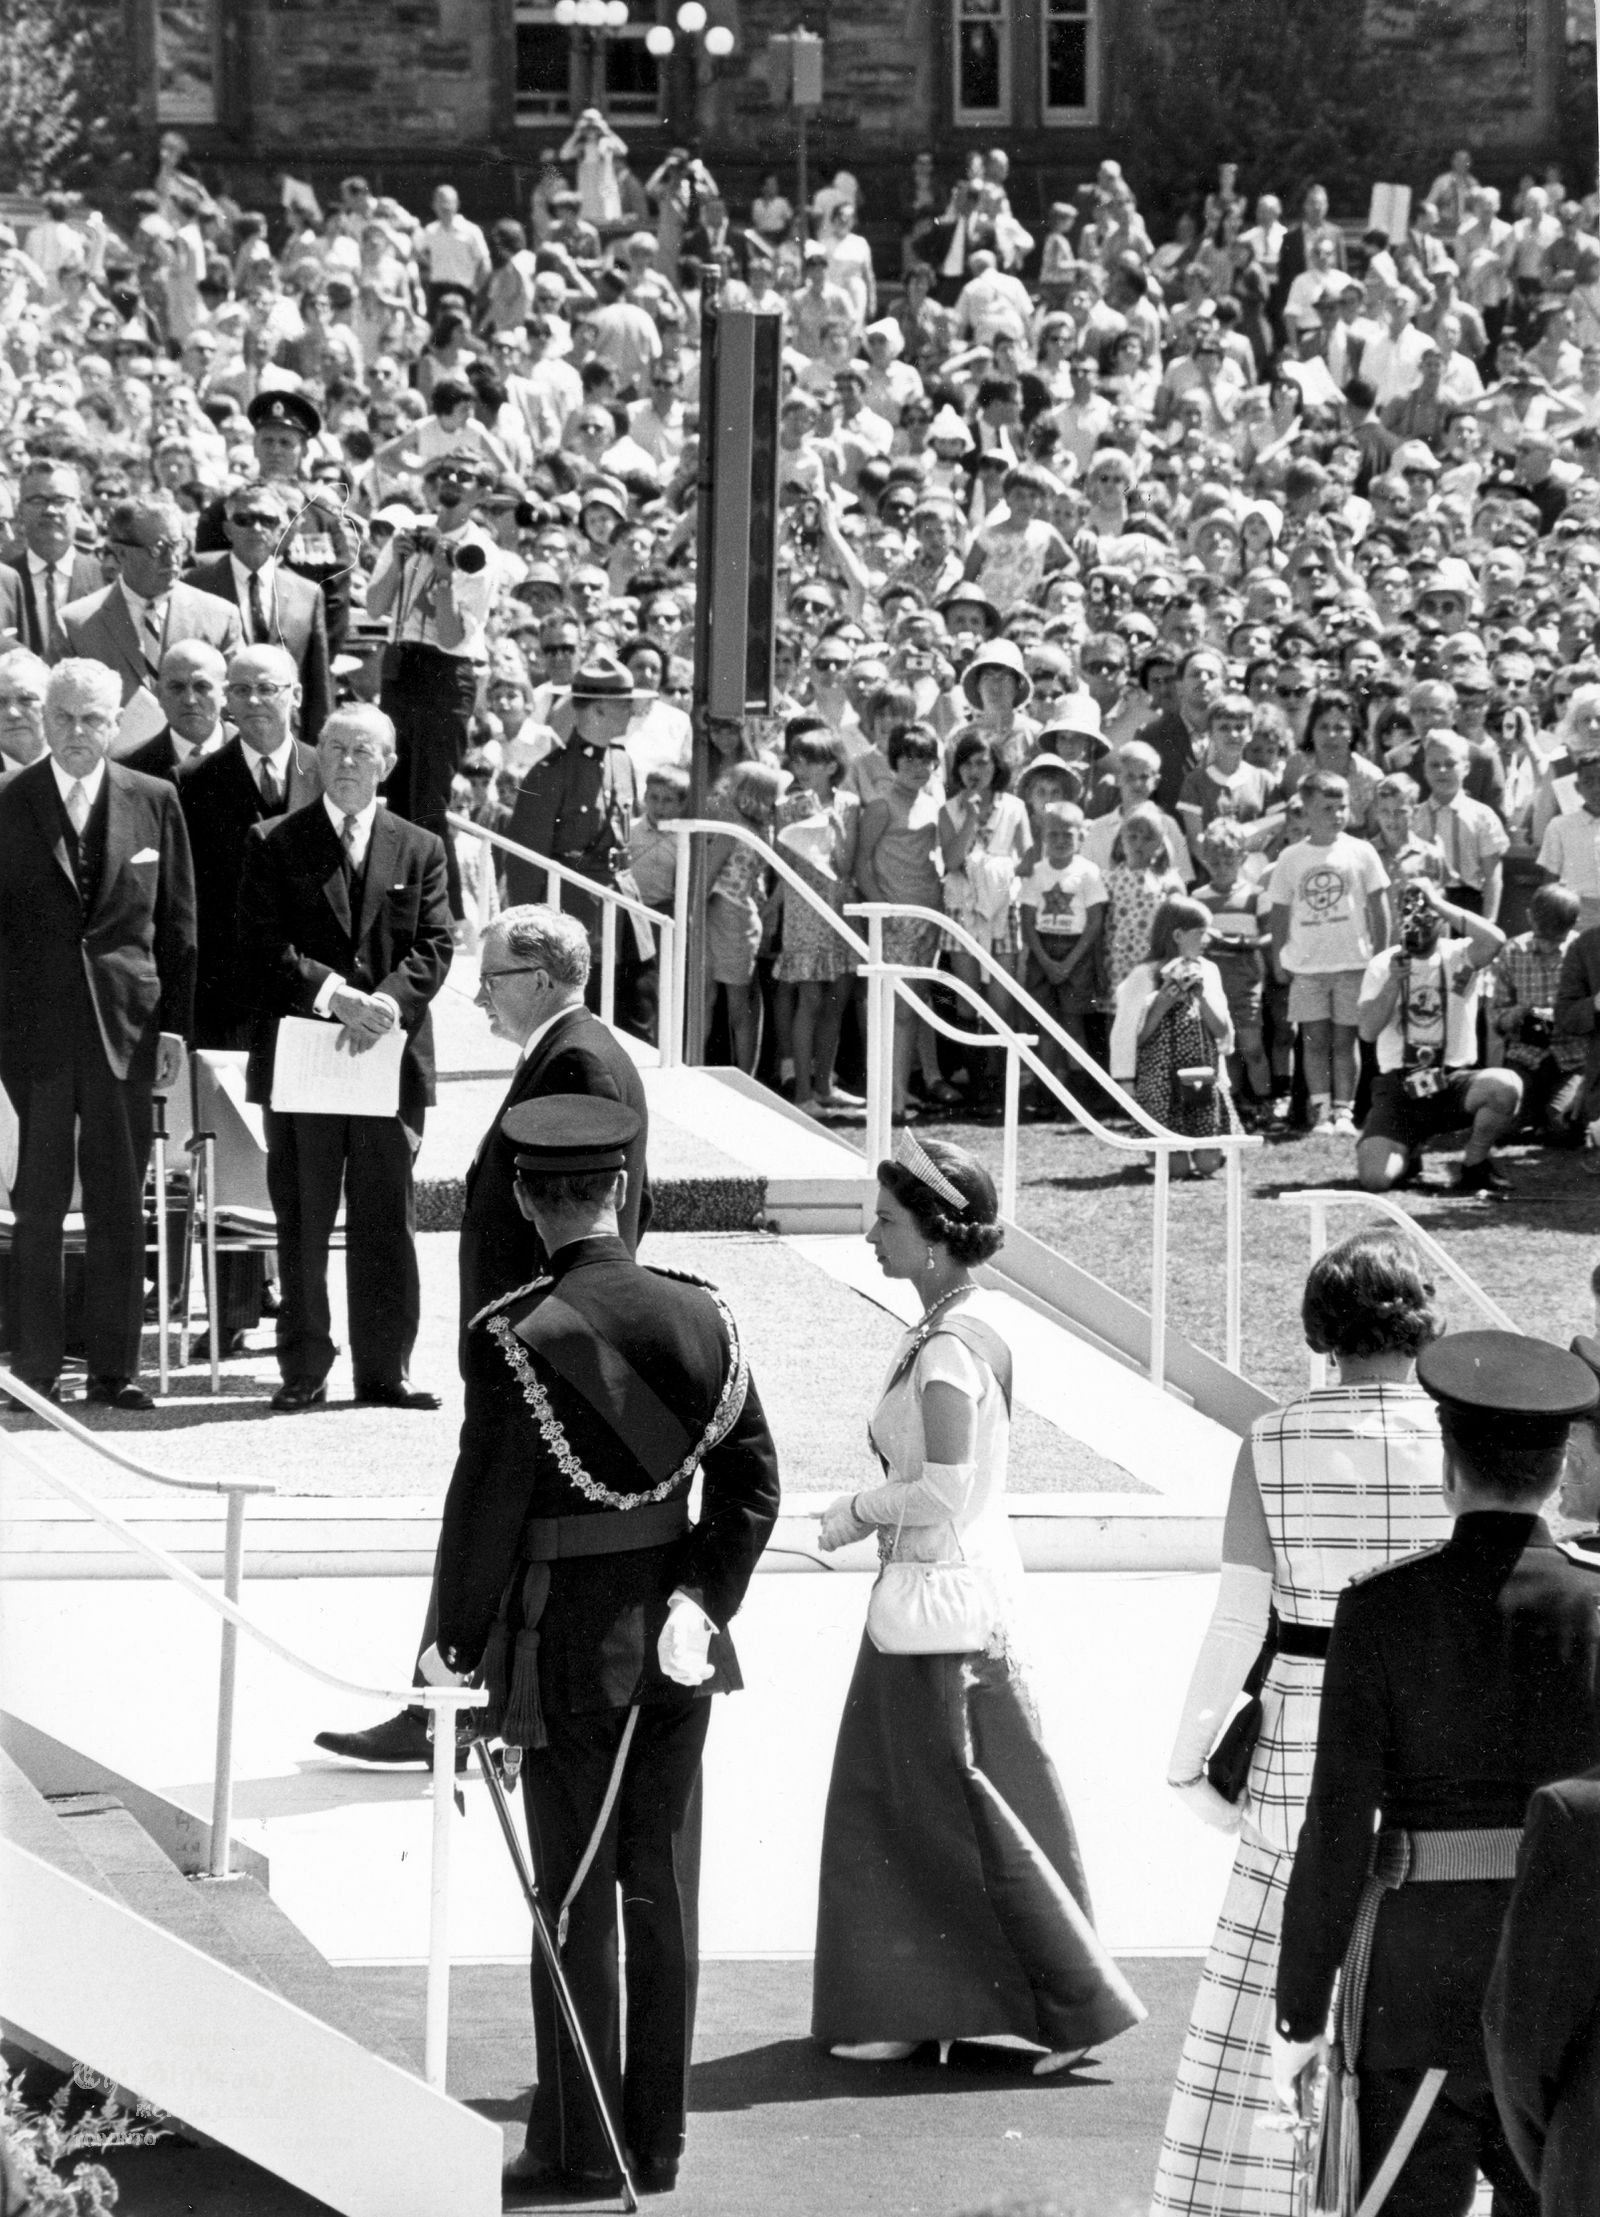 JULY 1, 1967 -- ROYALS CELEBRATE CANADA'S CENTENNIAL -- There was a formal but tumultuous welcome for Queen Elizabeth II and Prince Philip when they arrived on Parliament Hill in Ottawa for the morning ecumenical service on Canada's 100th birthday. The religious service, conducted by eight clergymen from various Christian denominations and the Jewish faith, began immediately upon her arrival. Her Majesty wore a long royal blue and white dress embroidered in a maple leaf design in diamonds and sapphires, with a diamond-fringe tiara, the blue sash and star of the Order of the Garter and family orders. Prince Philip was dressed in the uniform of colonel-in-chief of the Royal Canadian Regiment. Photo by John McNeill / The Globe and Mail Originally published July 3, 1967, page A8.